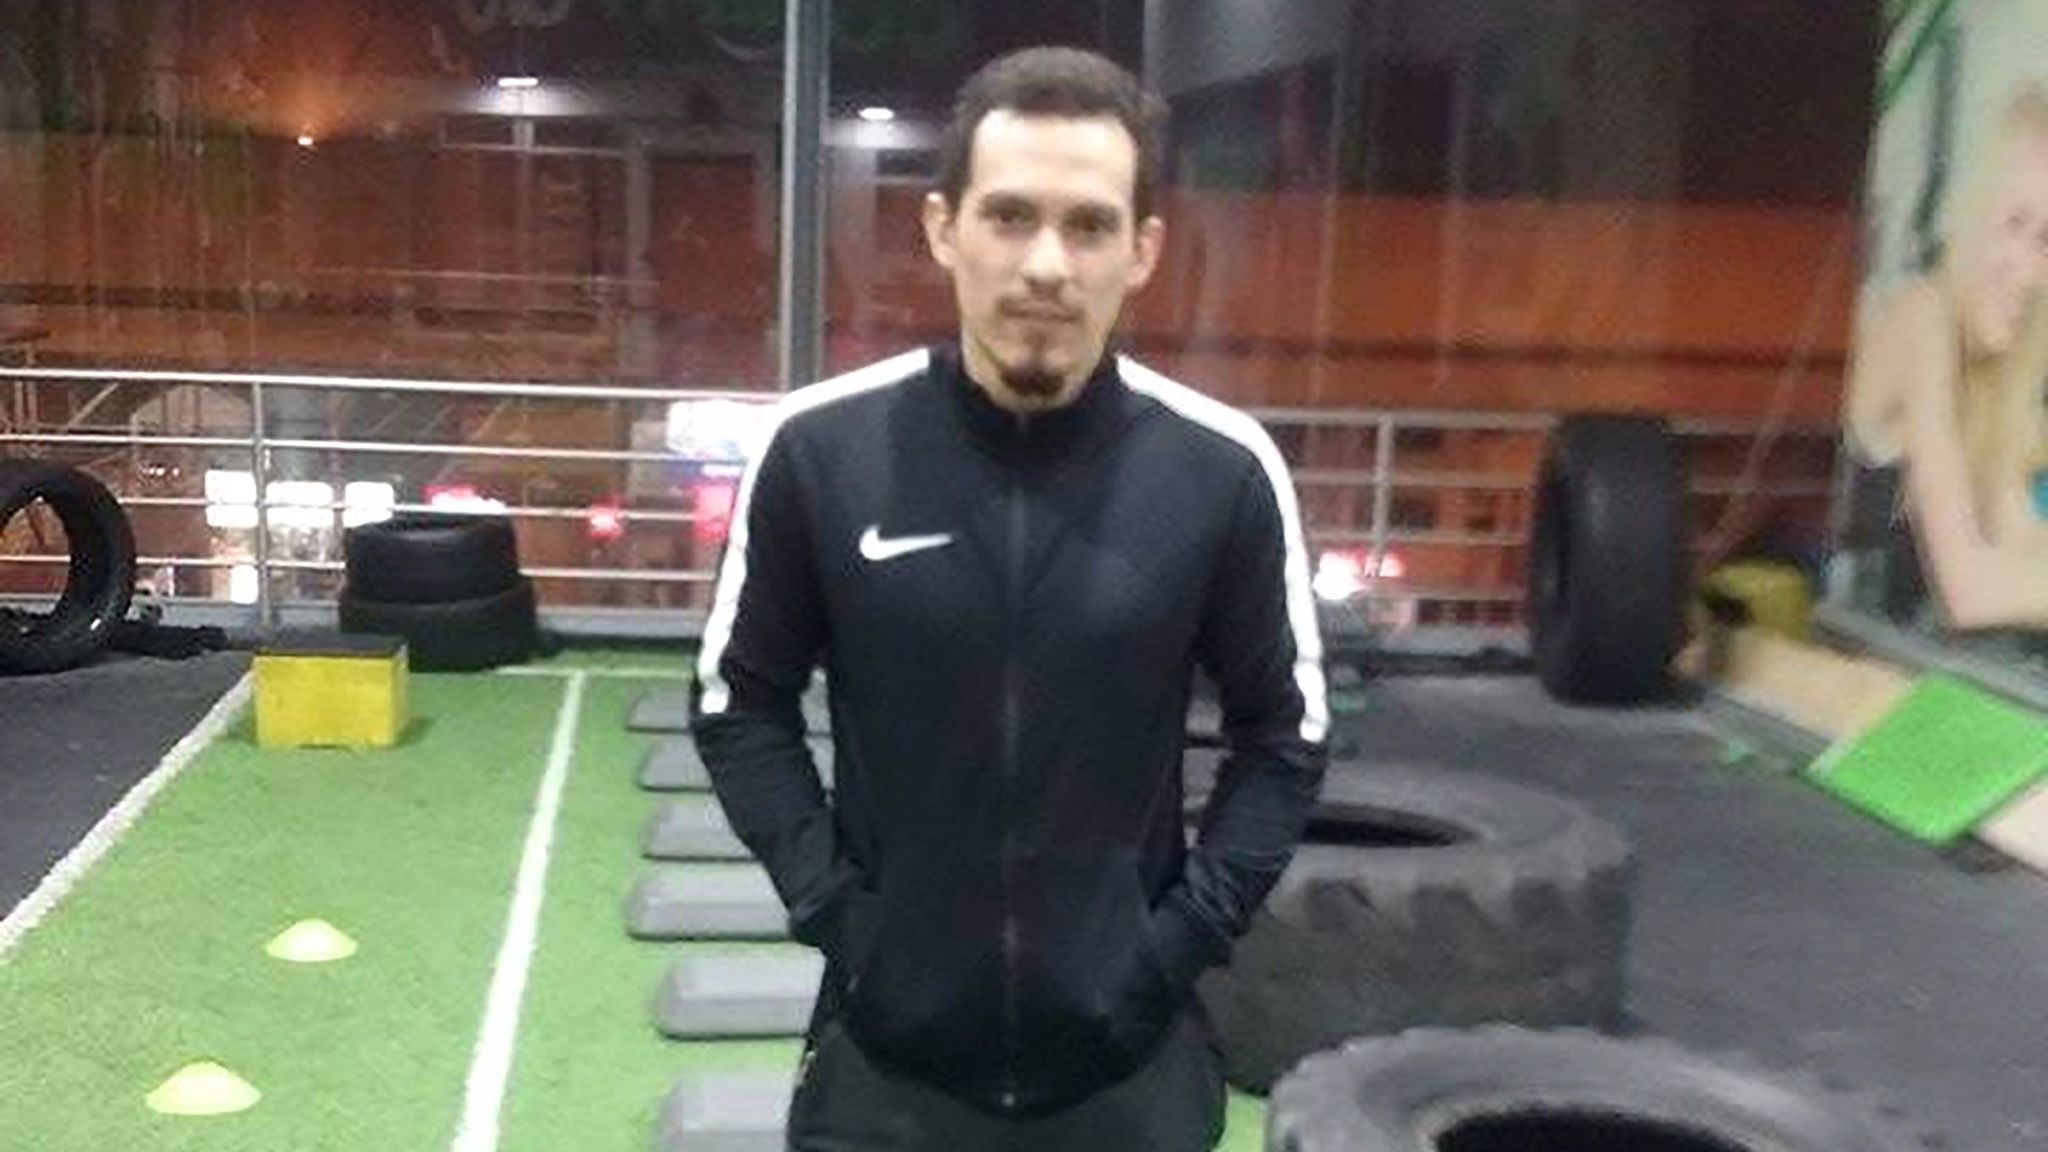 Ignacio Jose Cardosa is a trained electrical engineer but works as a personal trainer in Lima, Peru.